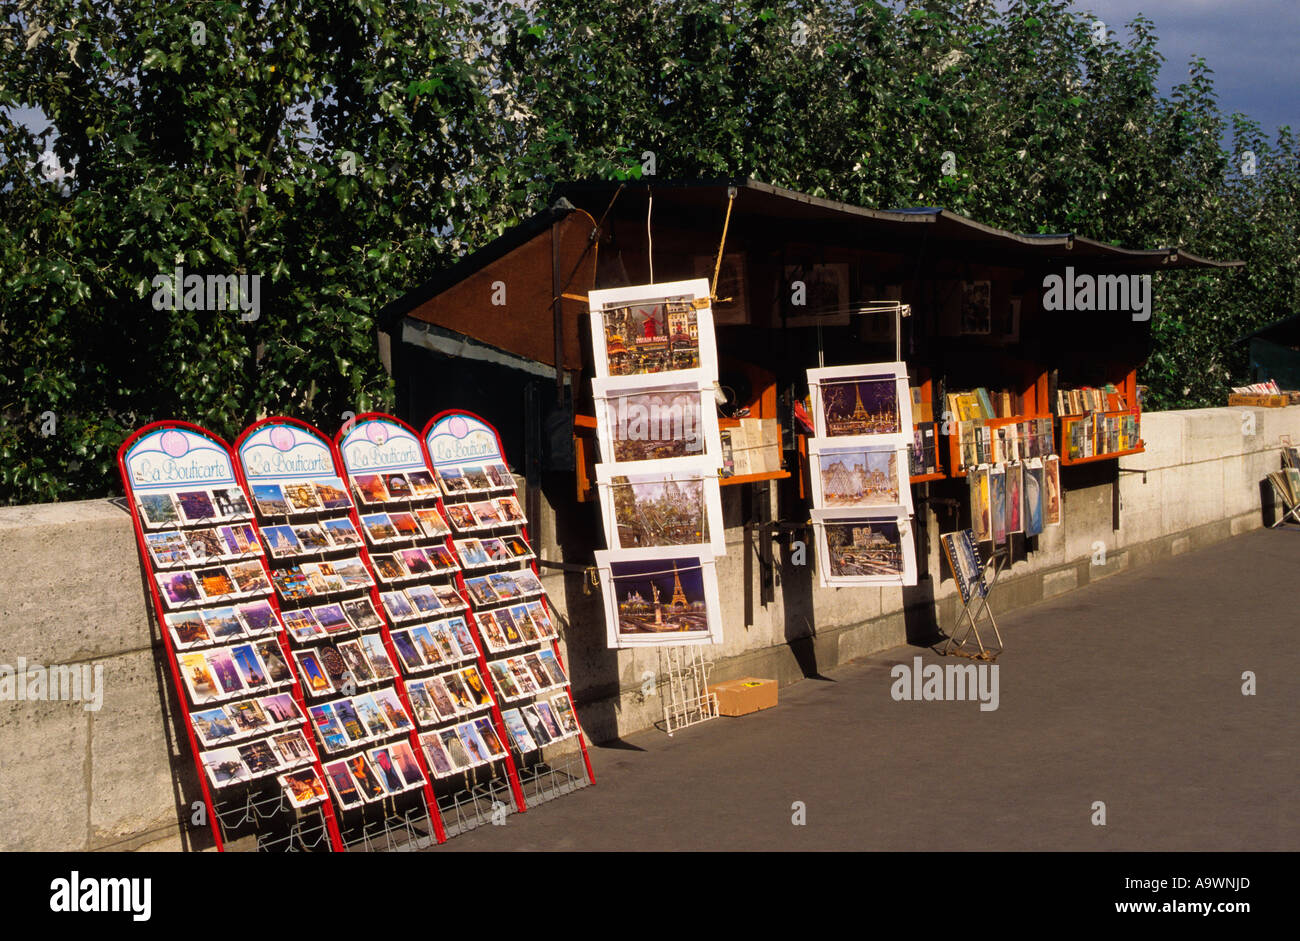 Europe France Paris Quai on the Left Bank of the River Seine Book Stall - Stock Image